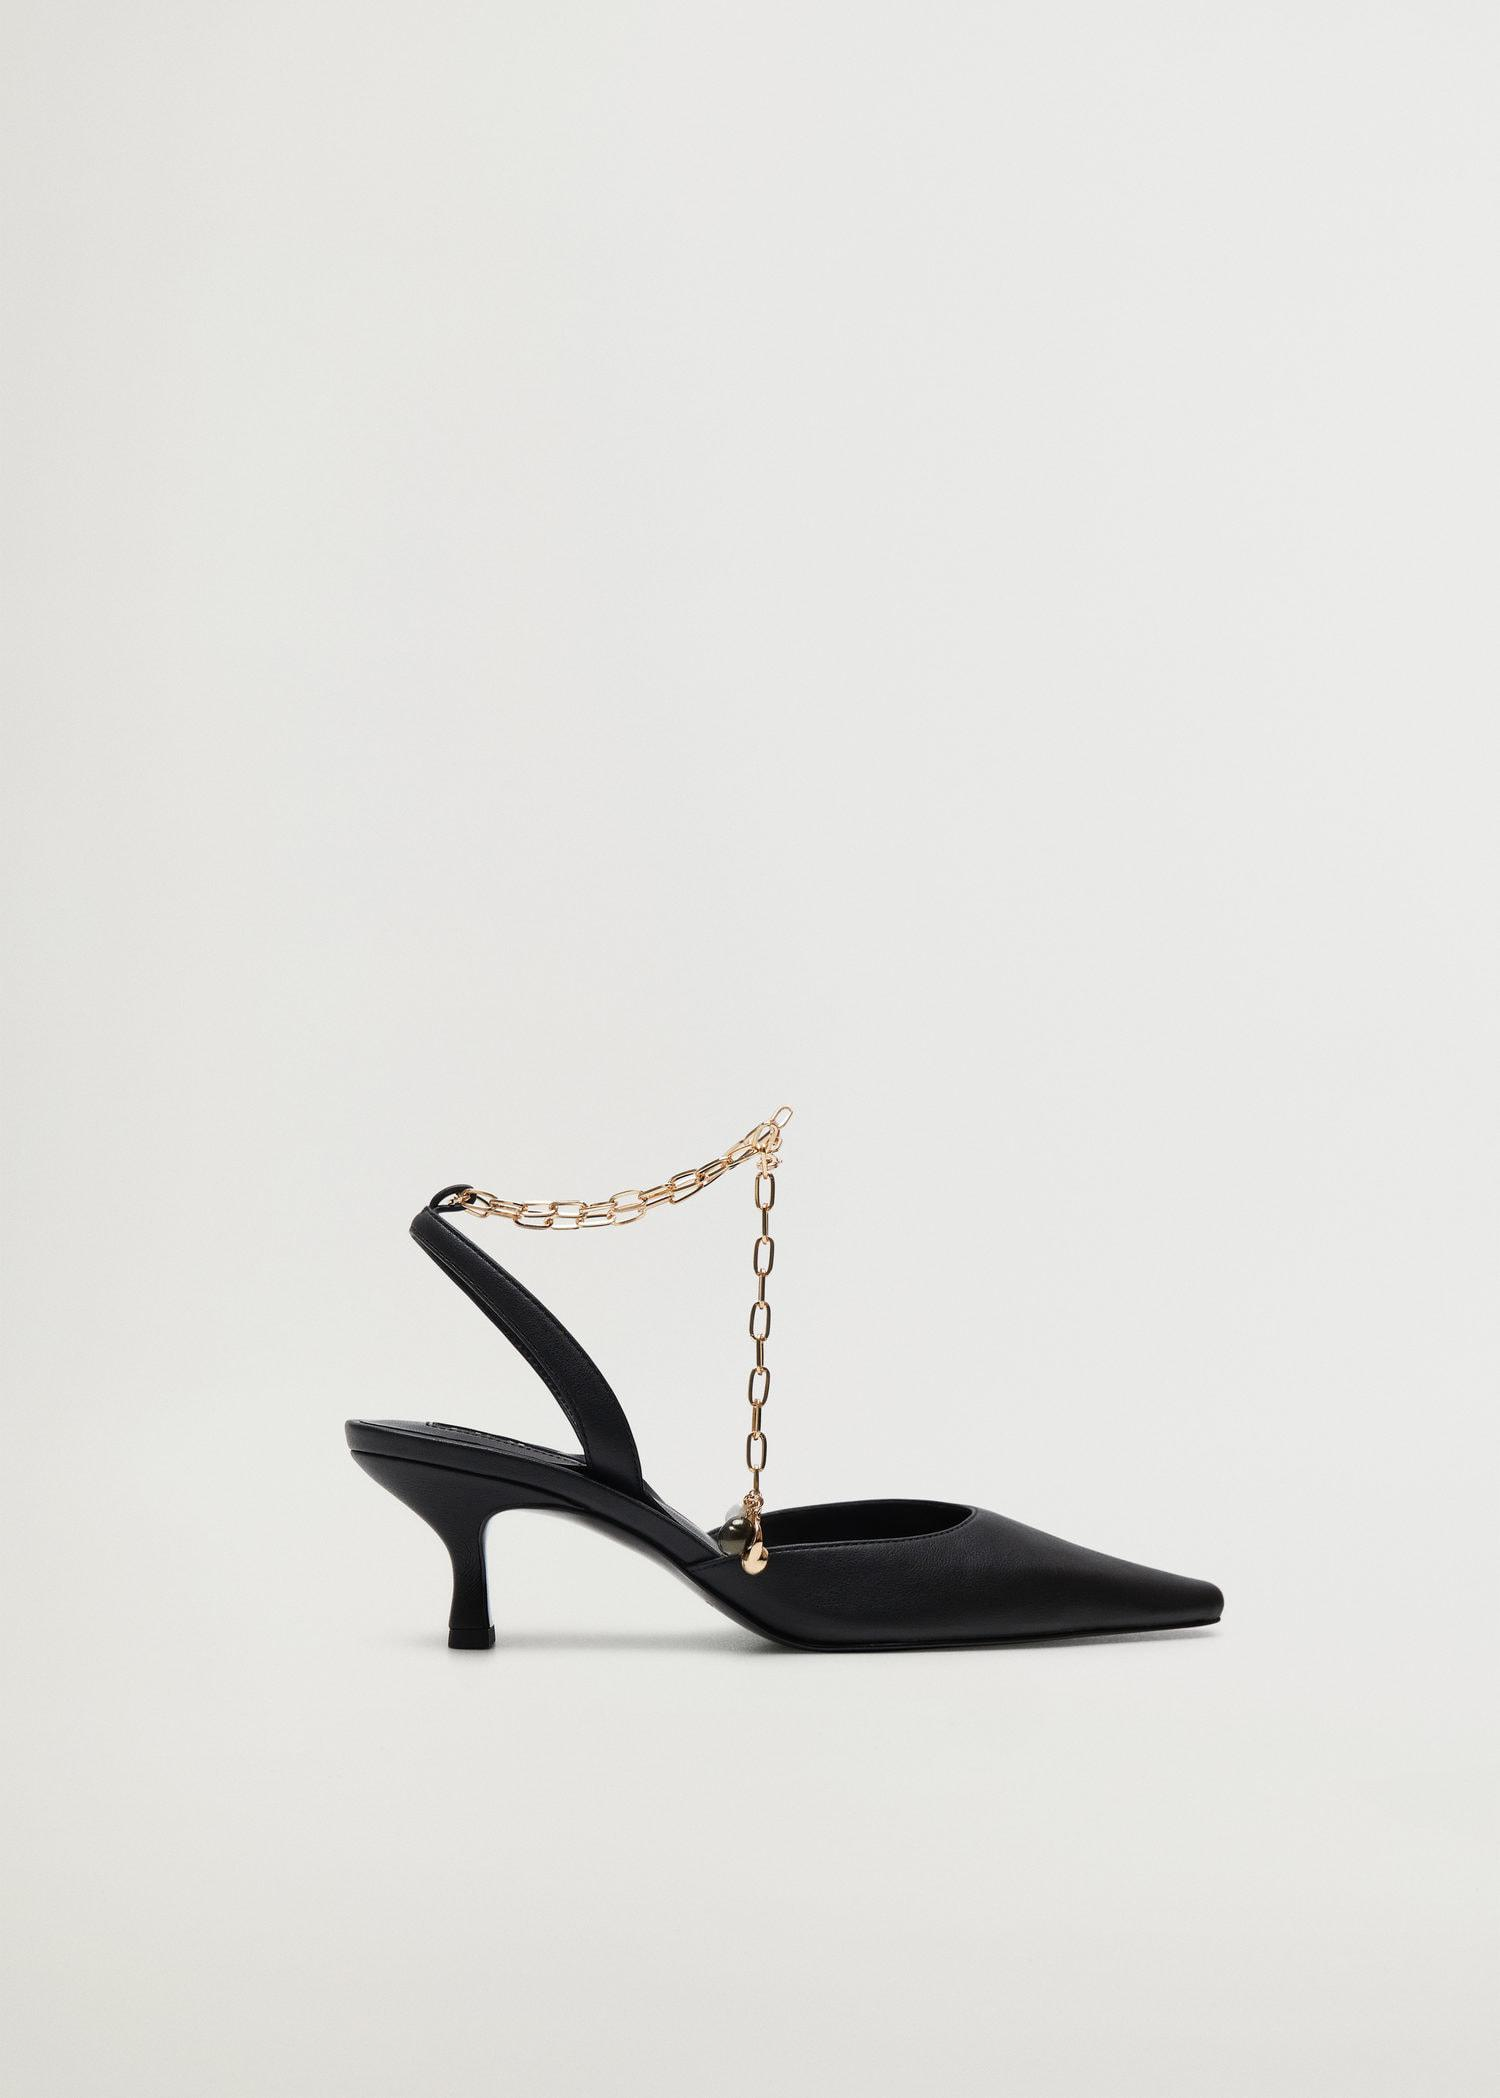 Heeled shoes with chain